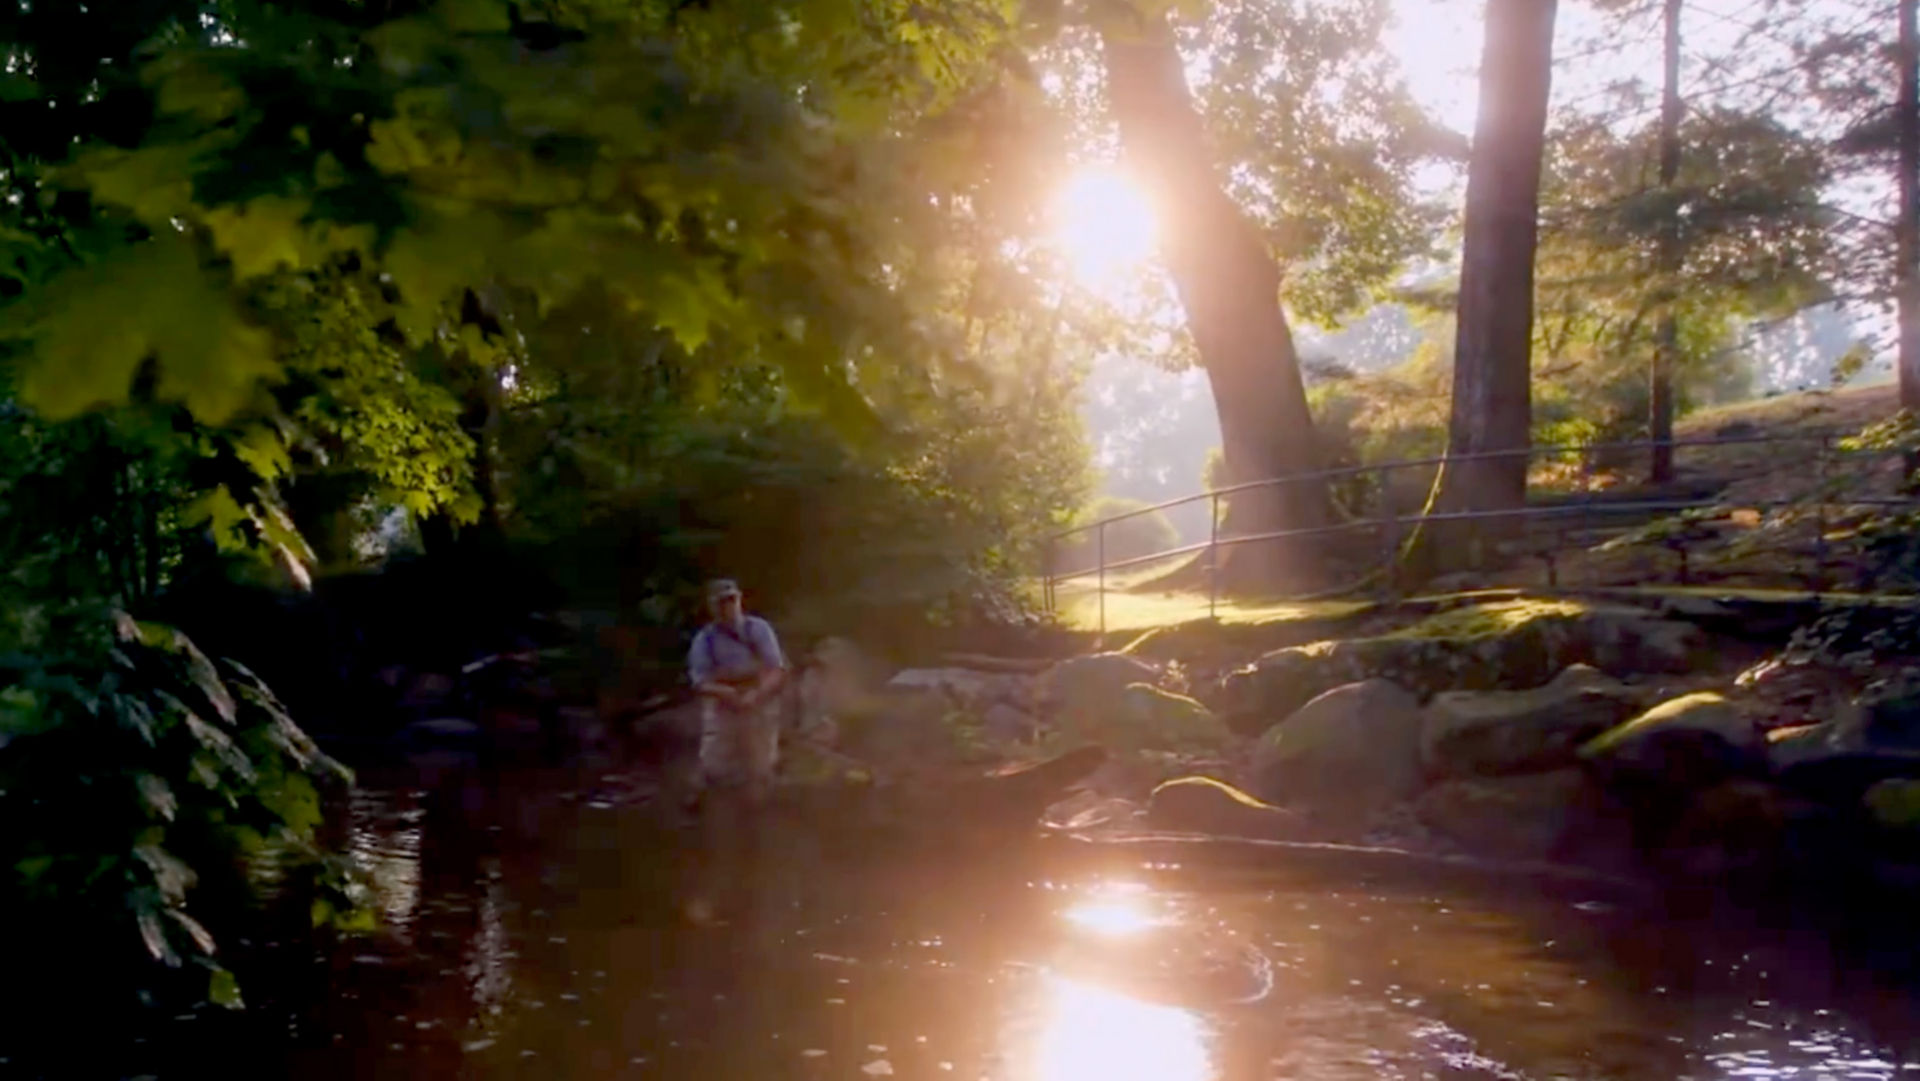 The late day sun shines on a man fishing in a stream.